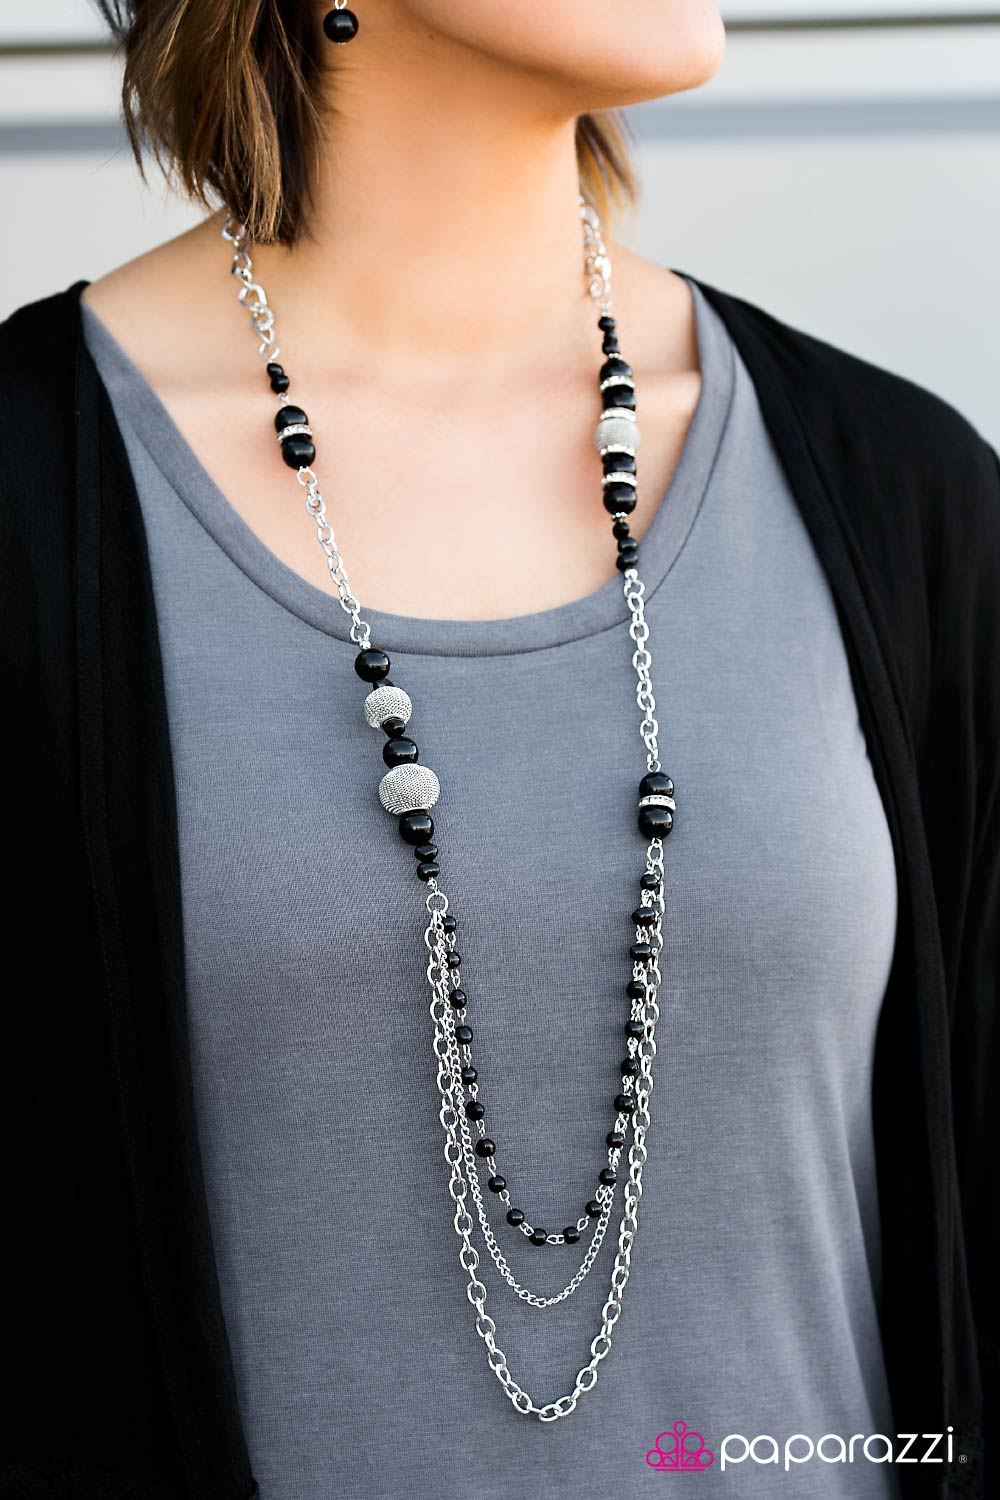 Enmeshed In Elegance - Black - Paparazzi necklace